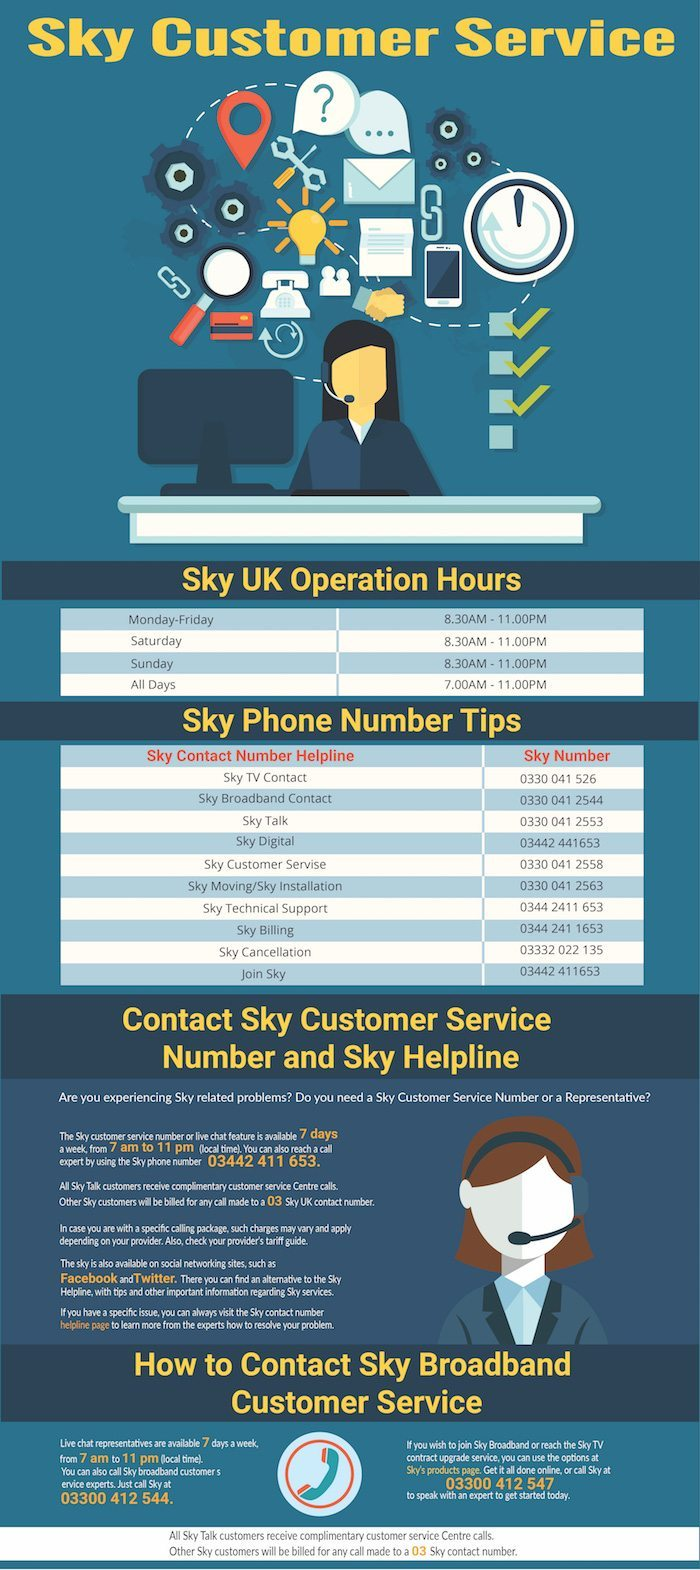 Sky Customer Services Numbers0025299011075 | 24-7helpline